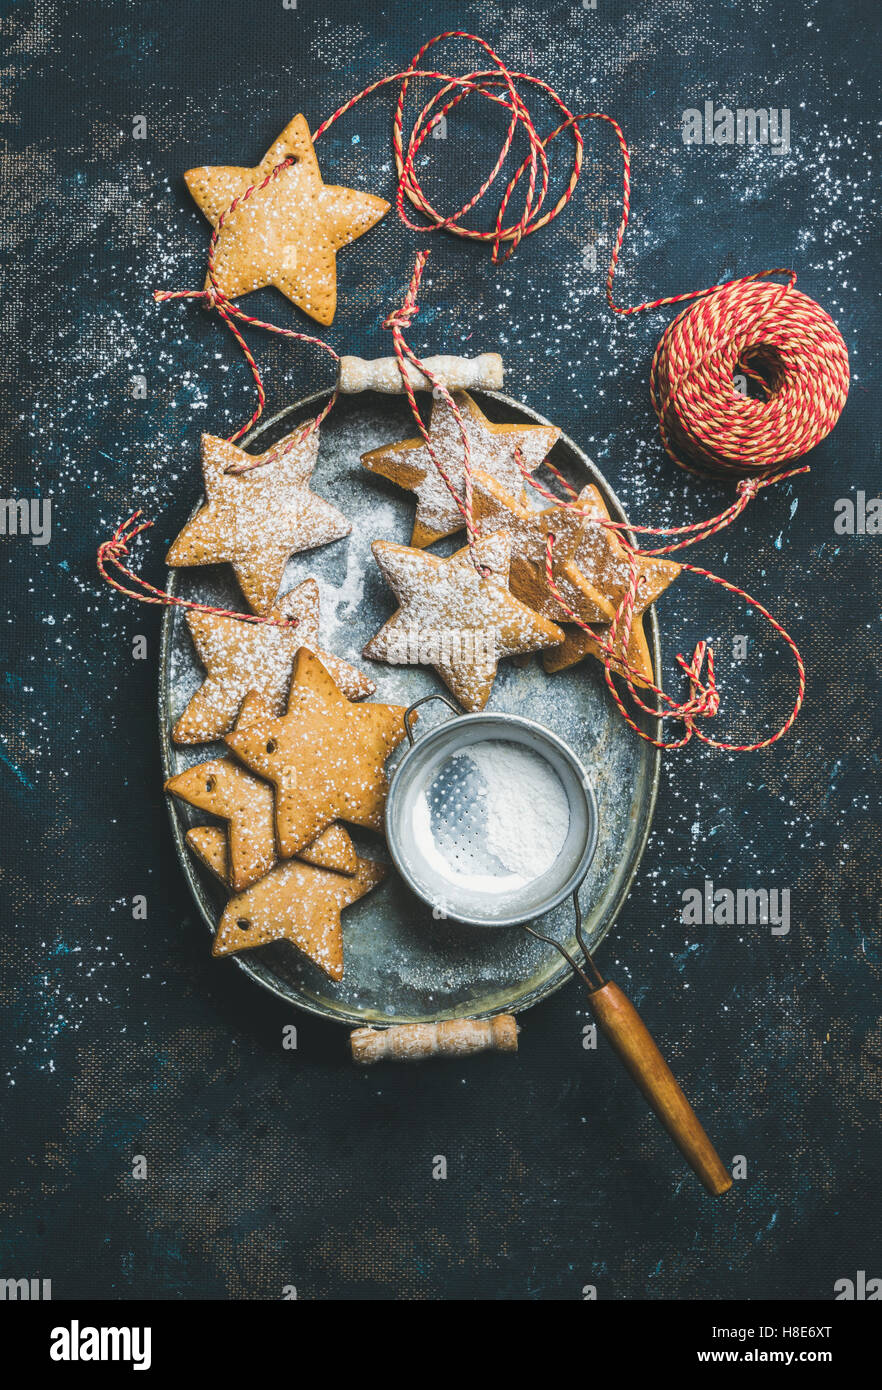 Christmas holiday star shaped gingerbread cookies for Christmas tree decoration, sieve, decorative snowflakes, balls - Stock Image